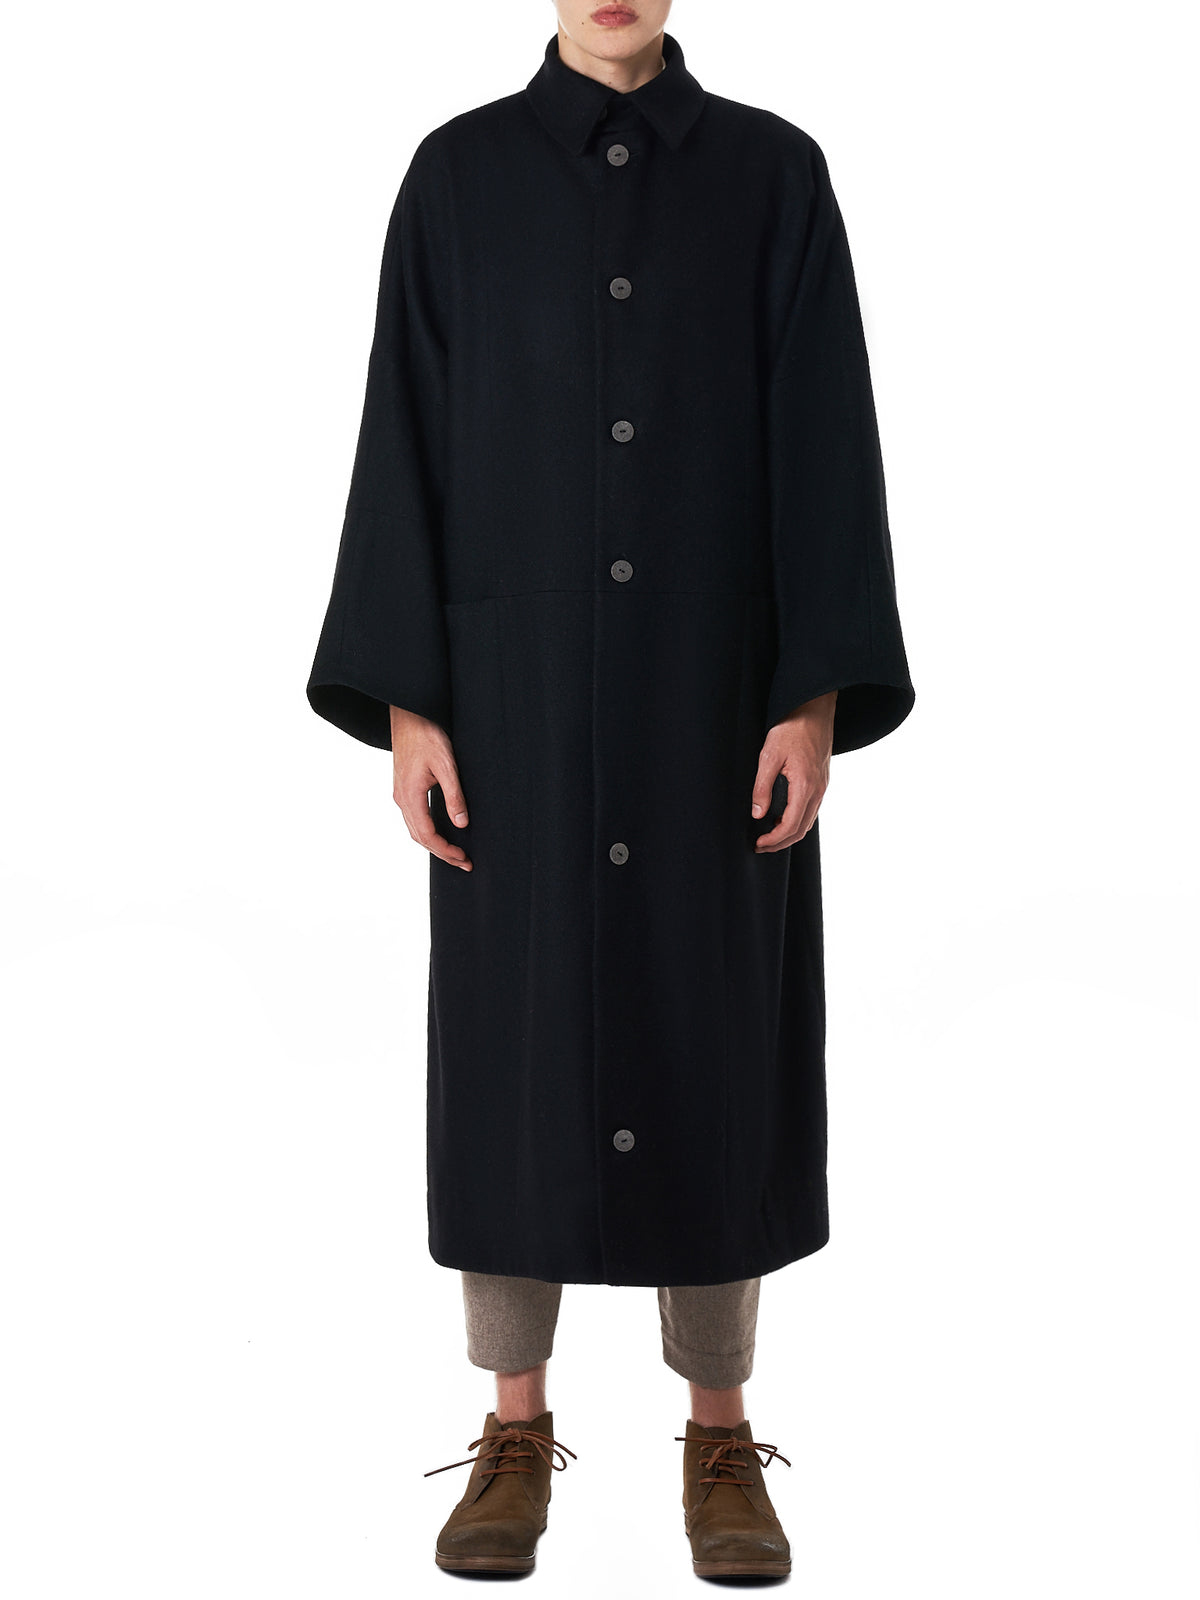 Toogood 'The Doorman' Coat - Hlorenzo Front